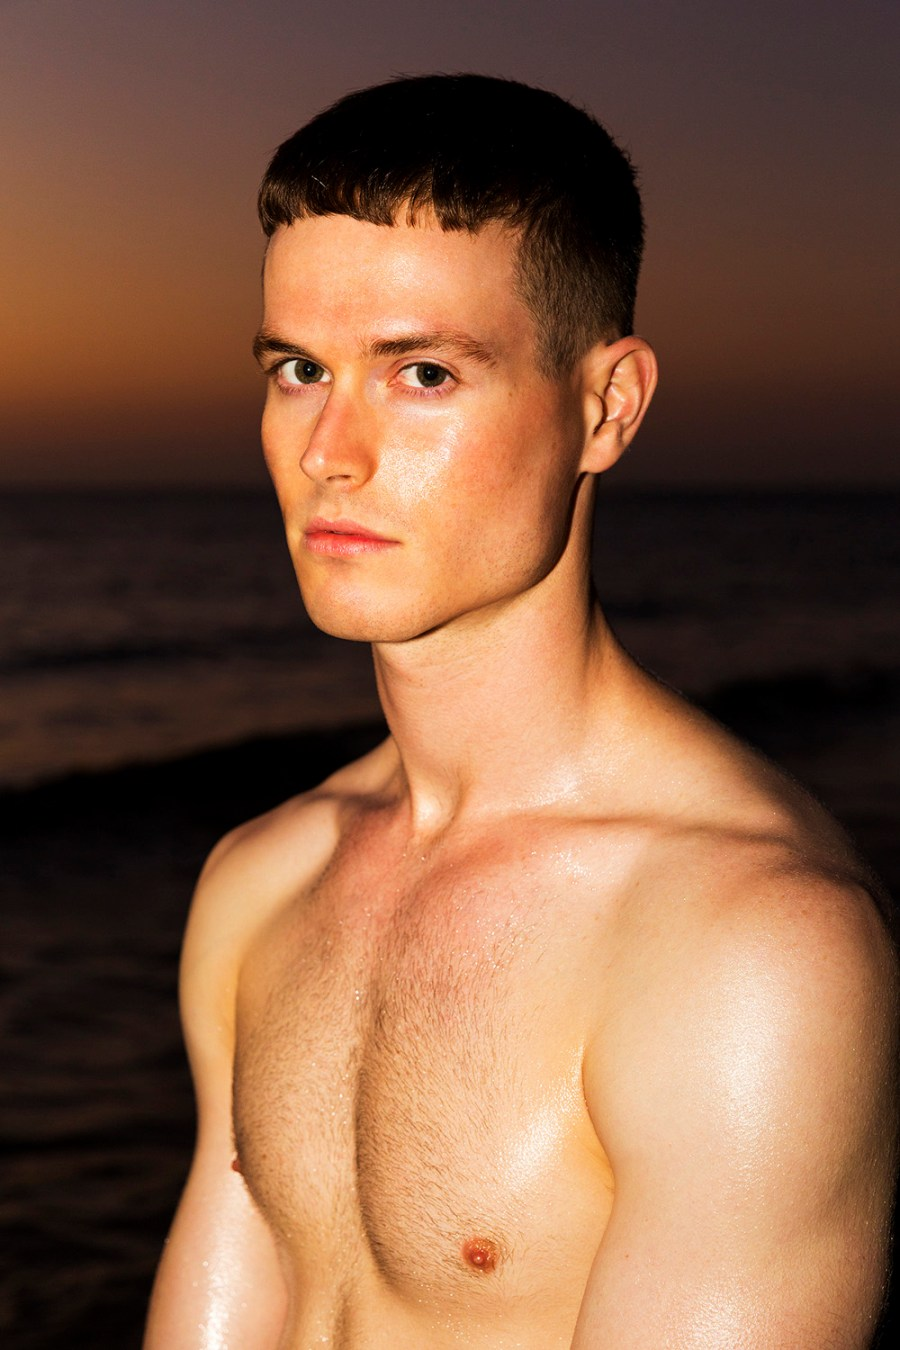 Matthew Harden by Trent Pace for Fashionably Male